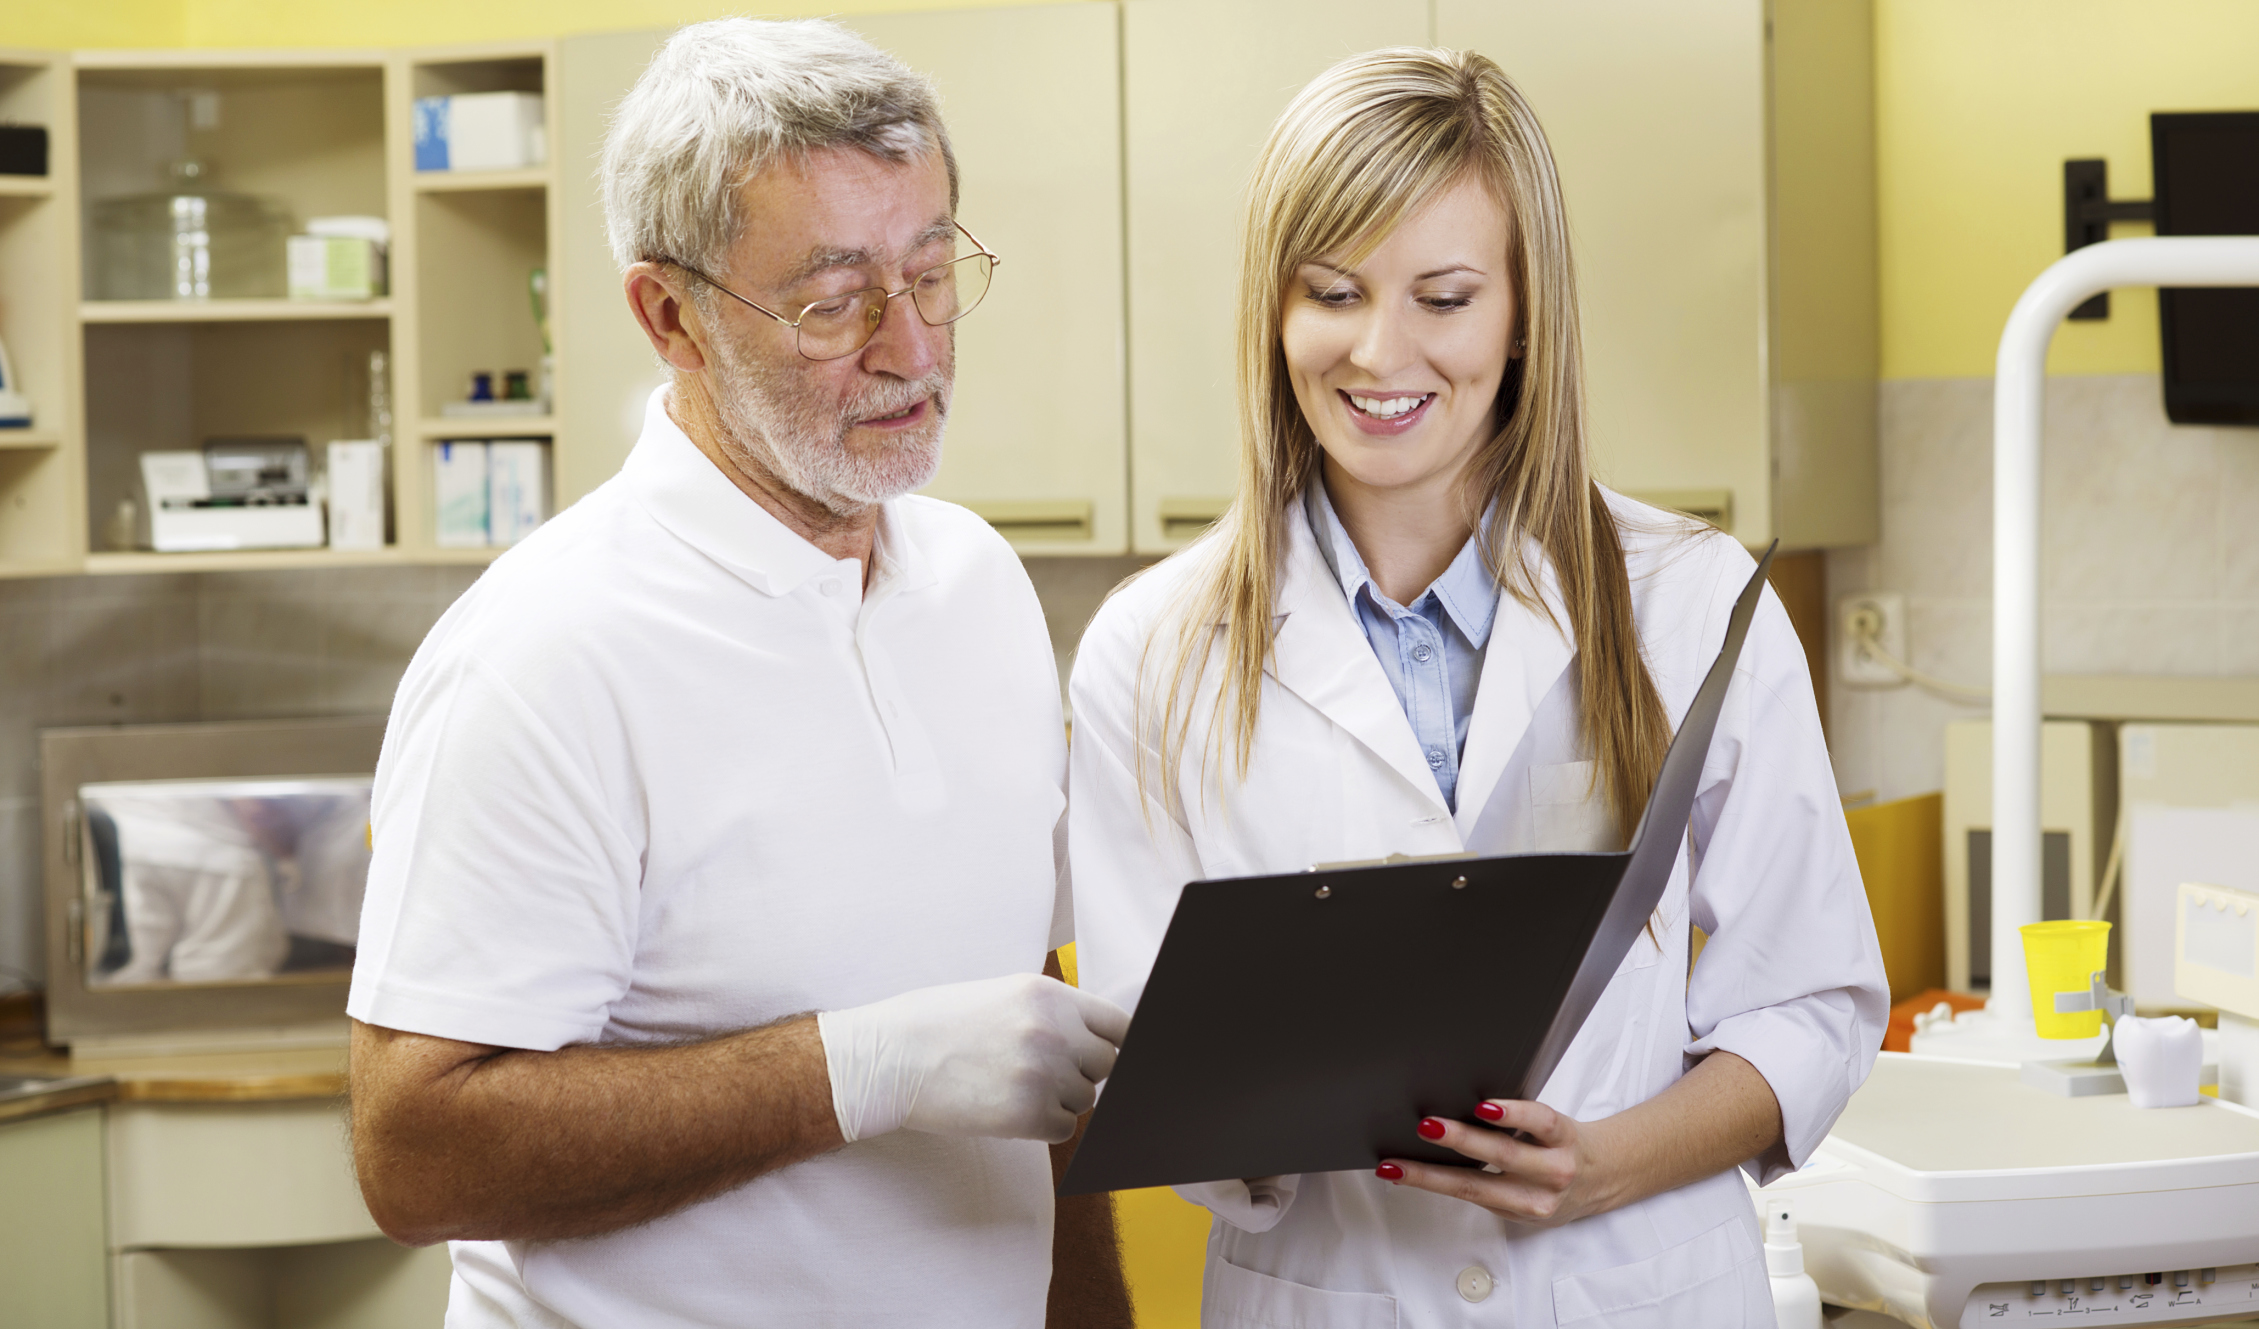 How Much Does a Lab Assistant Make? | Career Trend